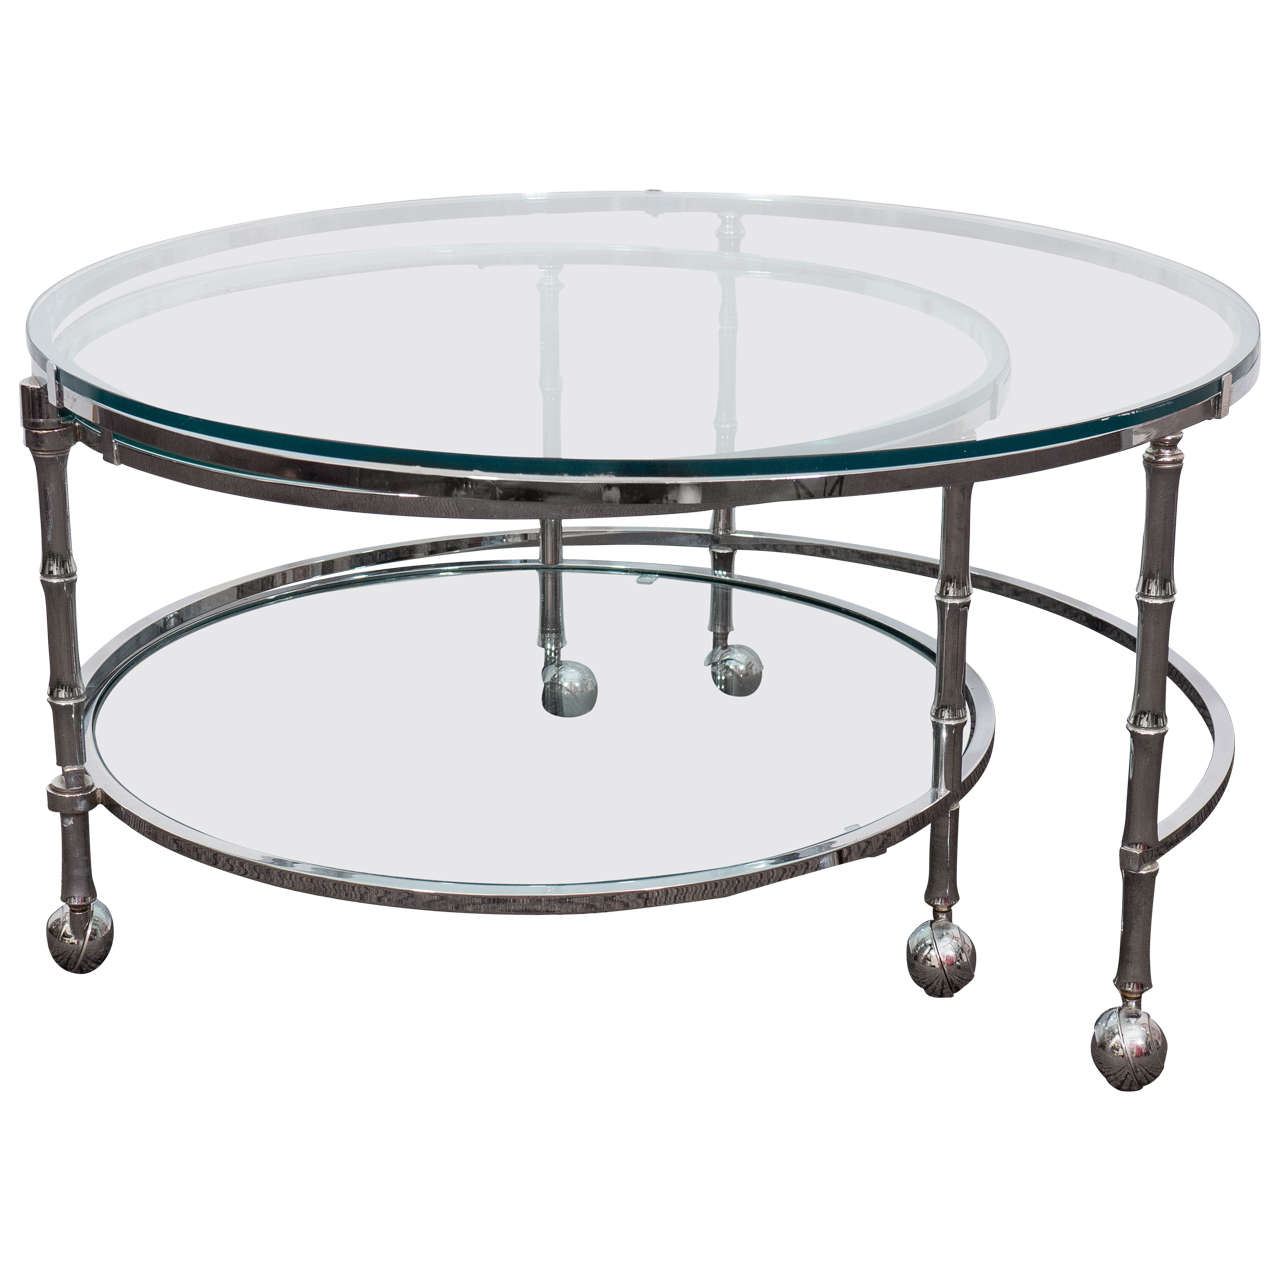 Midcentury Three Tier Round Chrome Coffee Table In The Style Of Milo  Baughman 1